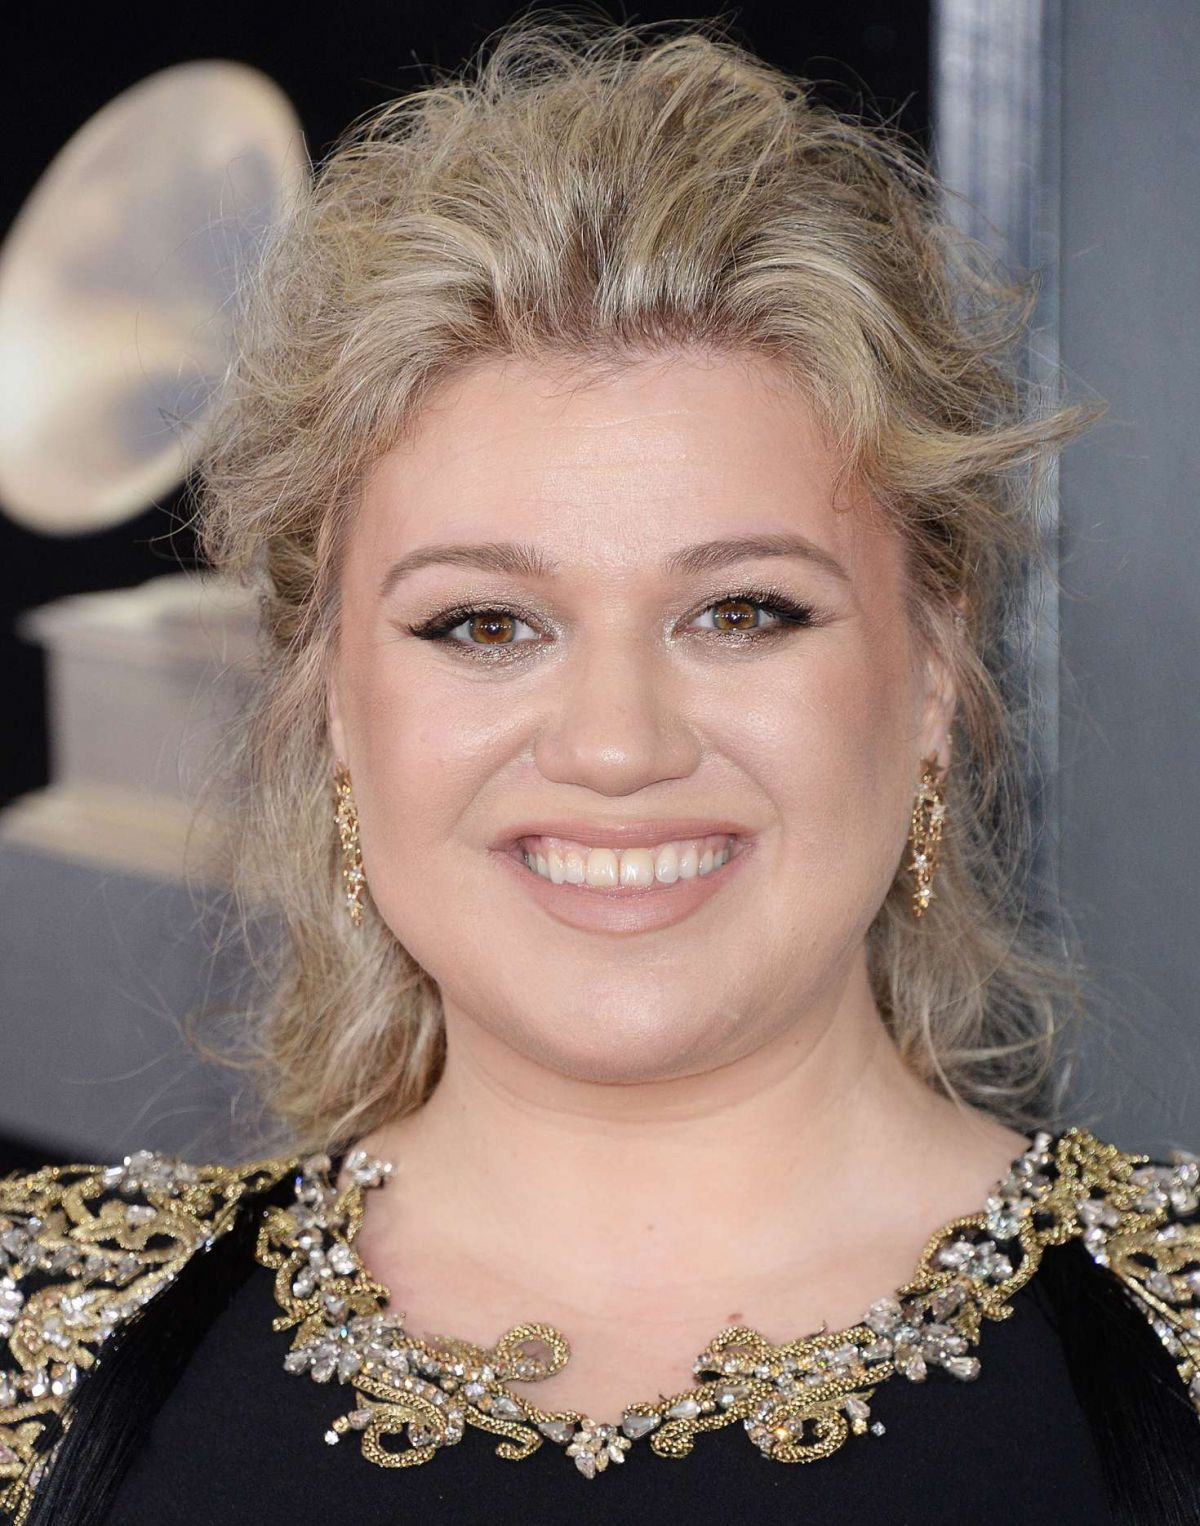 KELLY CLARKSON at Grammy 2018 Awards in New York 01/28/2018 - HawtCelebs